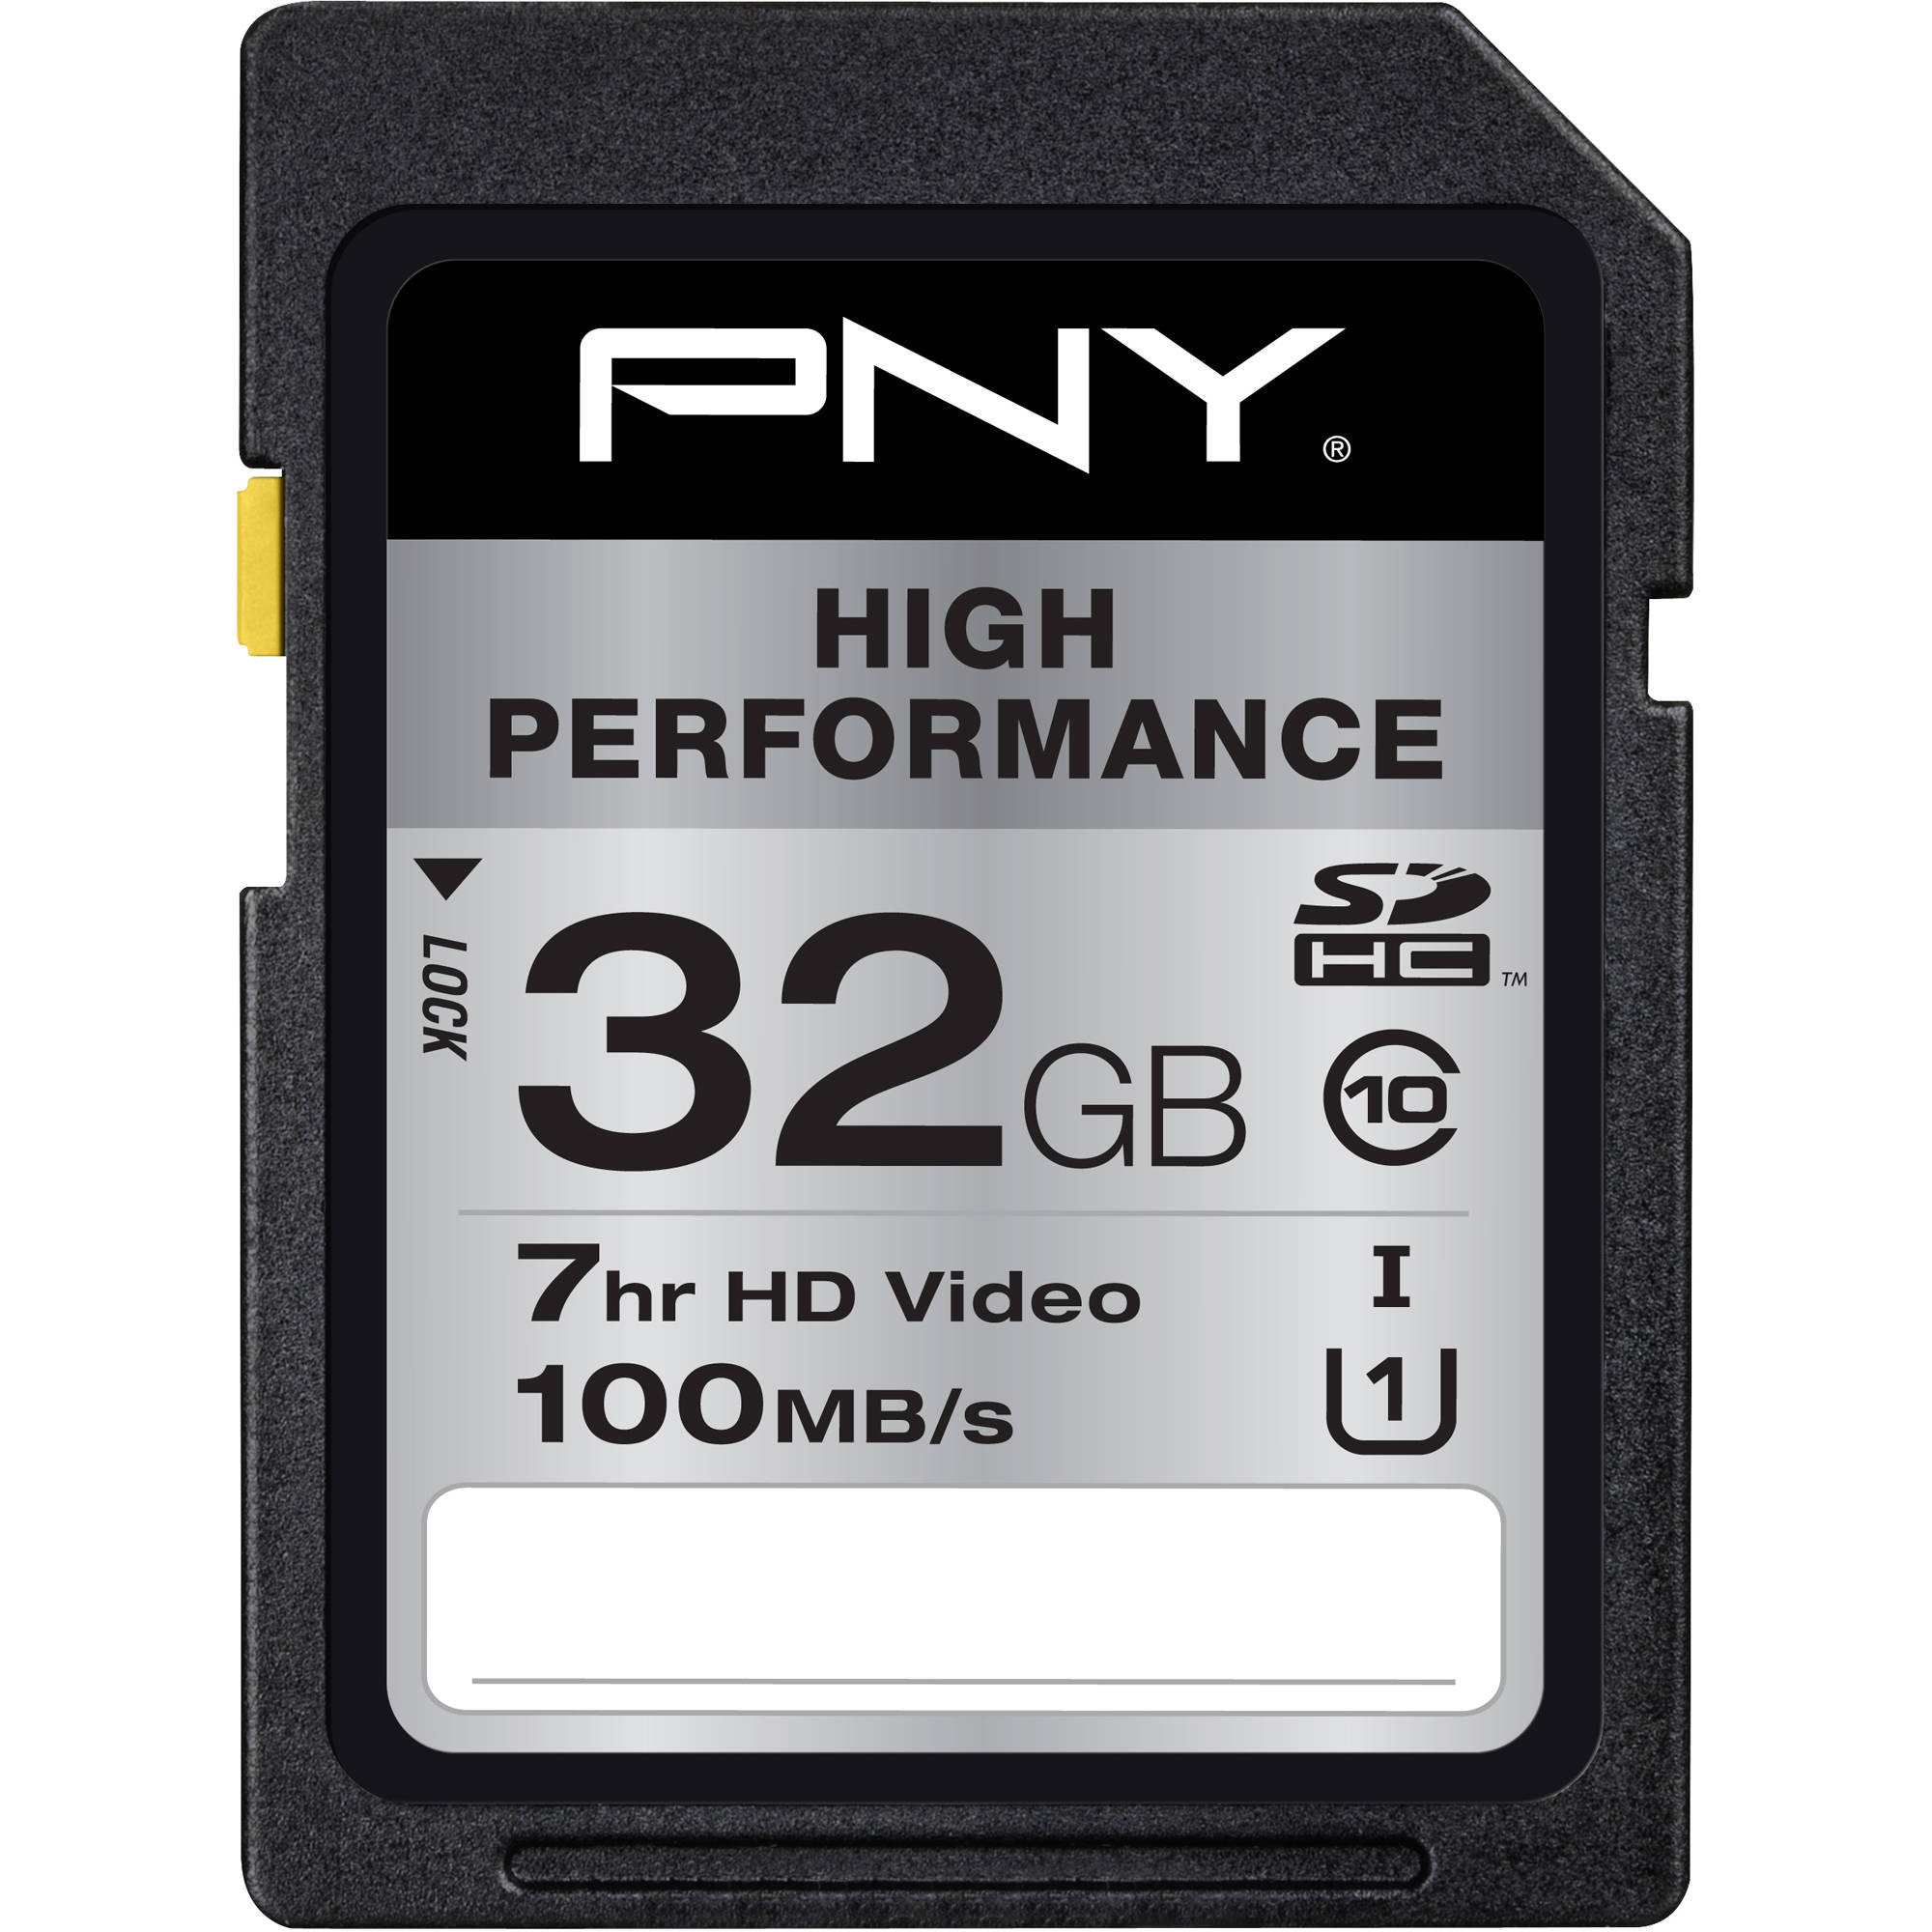 PNY SDHC CARD TELECHARGER PILOTE